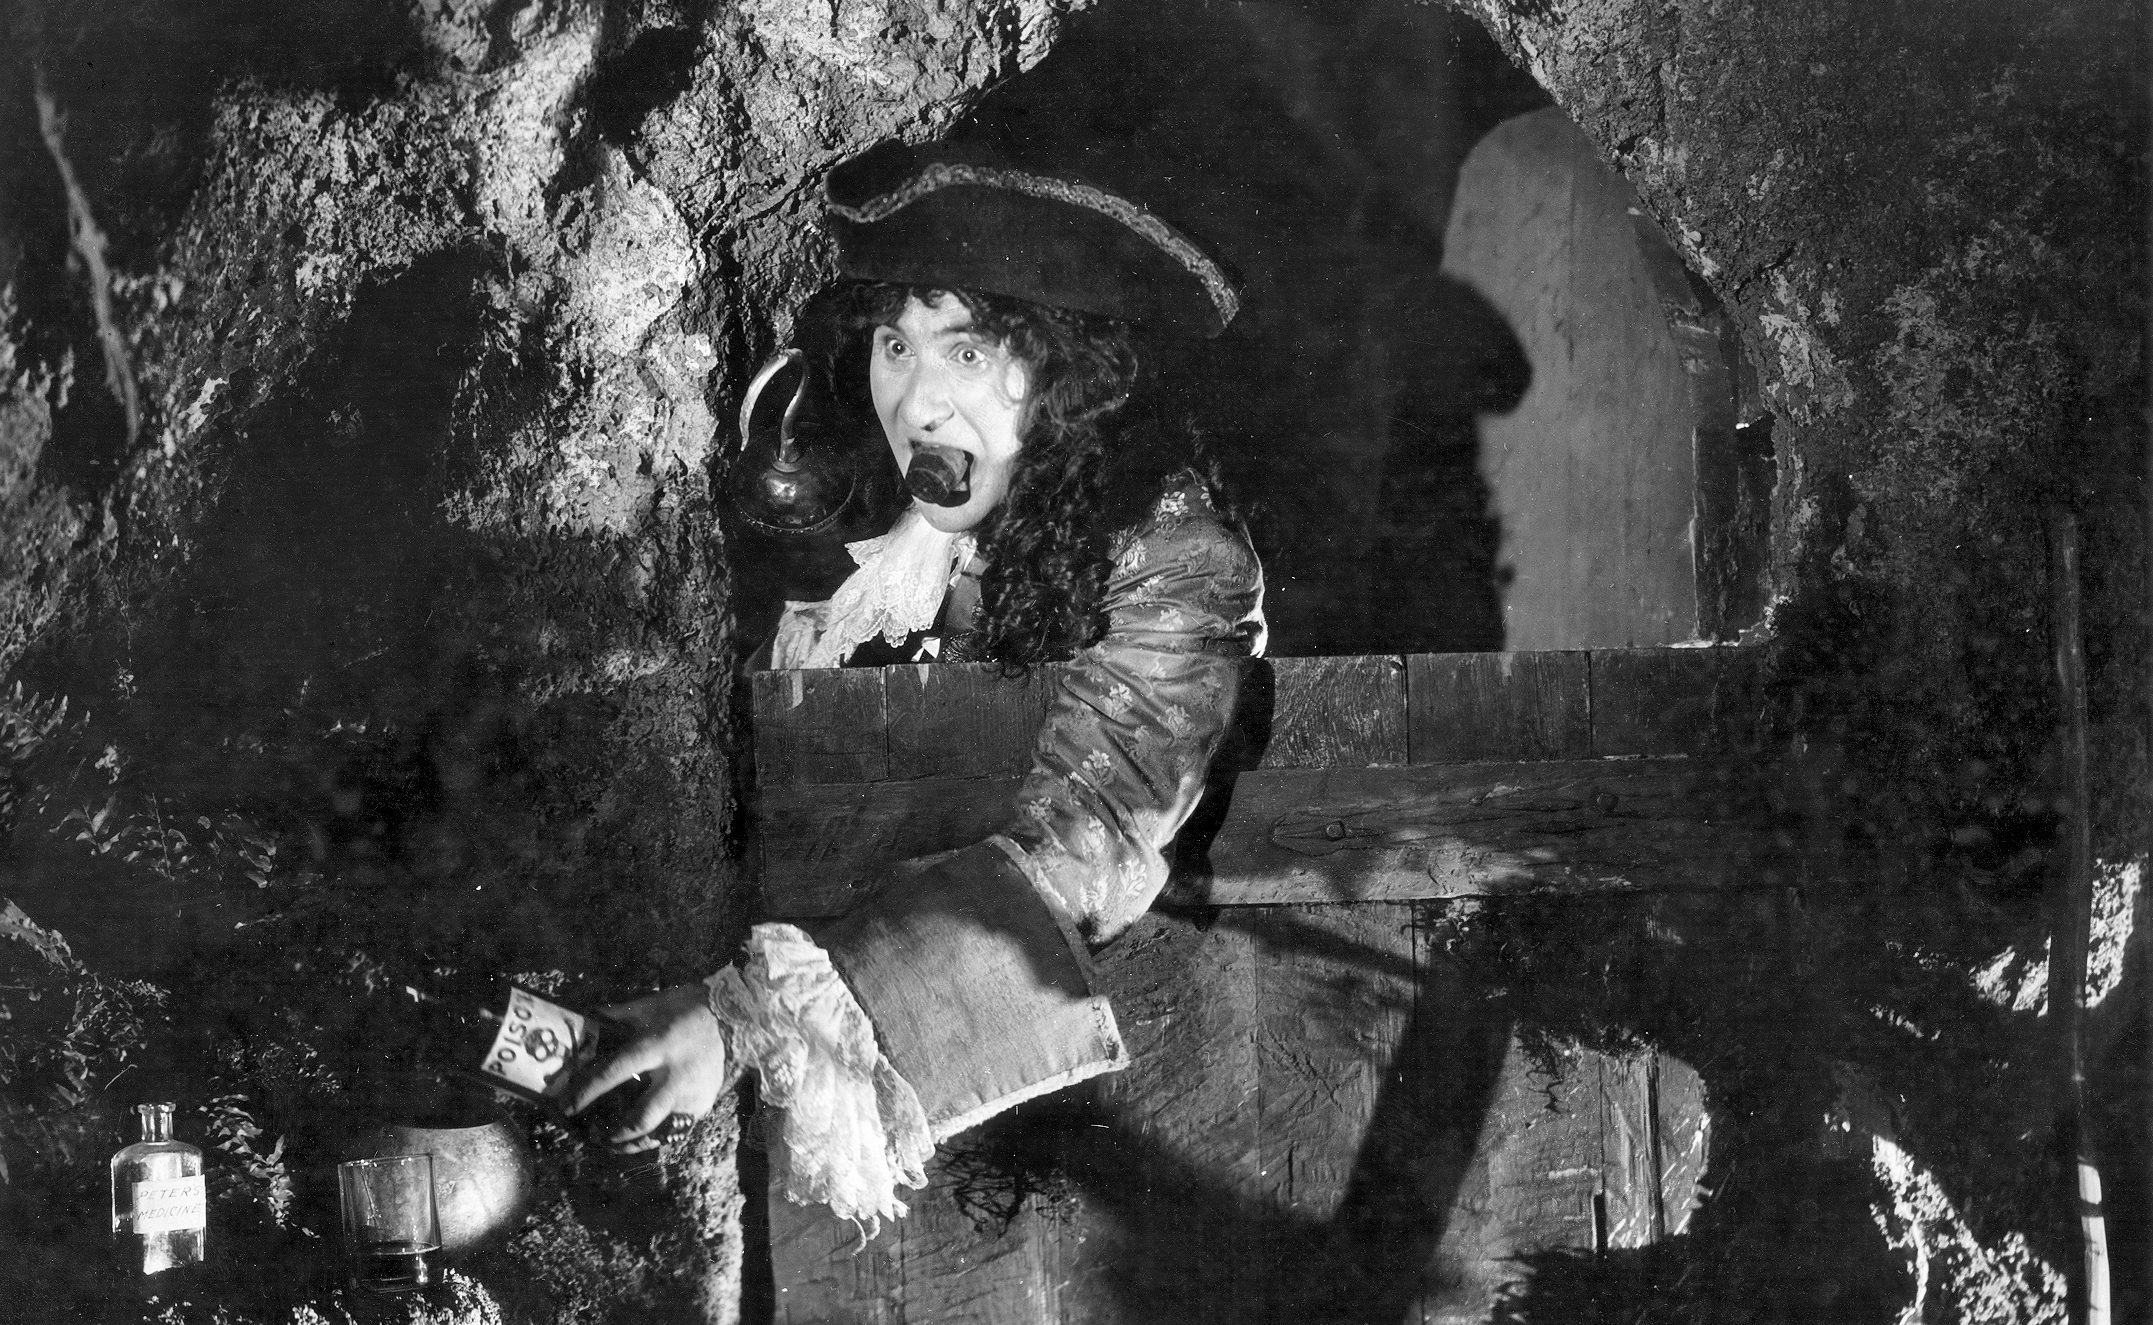 A scene from the classic 1924 movie featuring Ernest Torrance as Captain Hook.